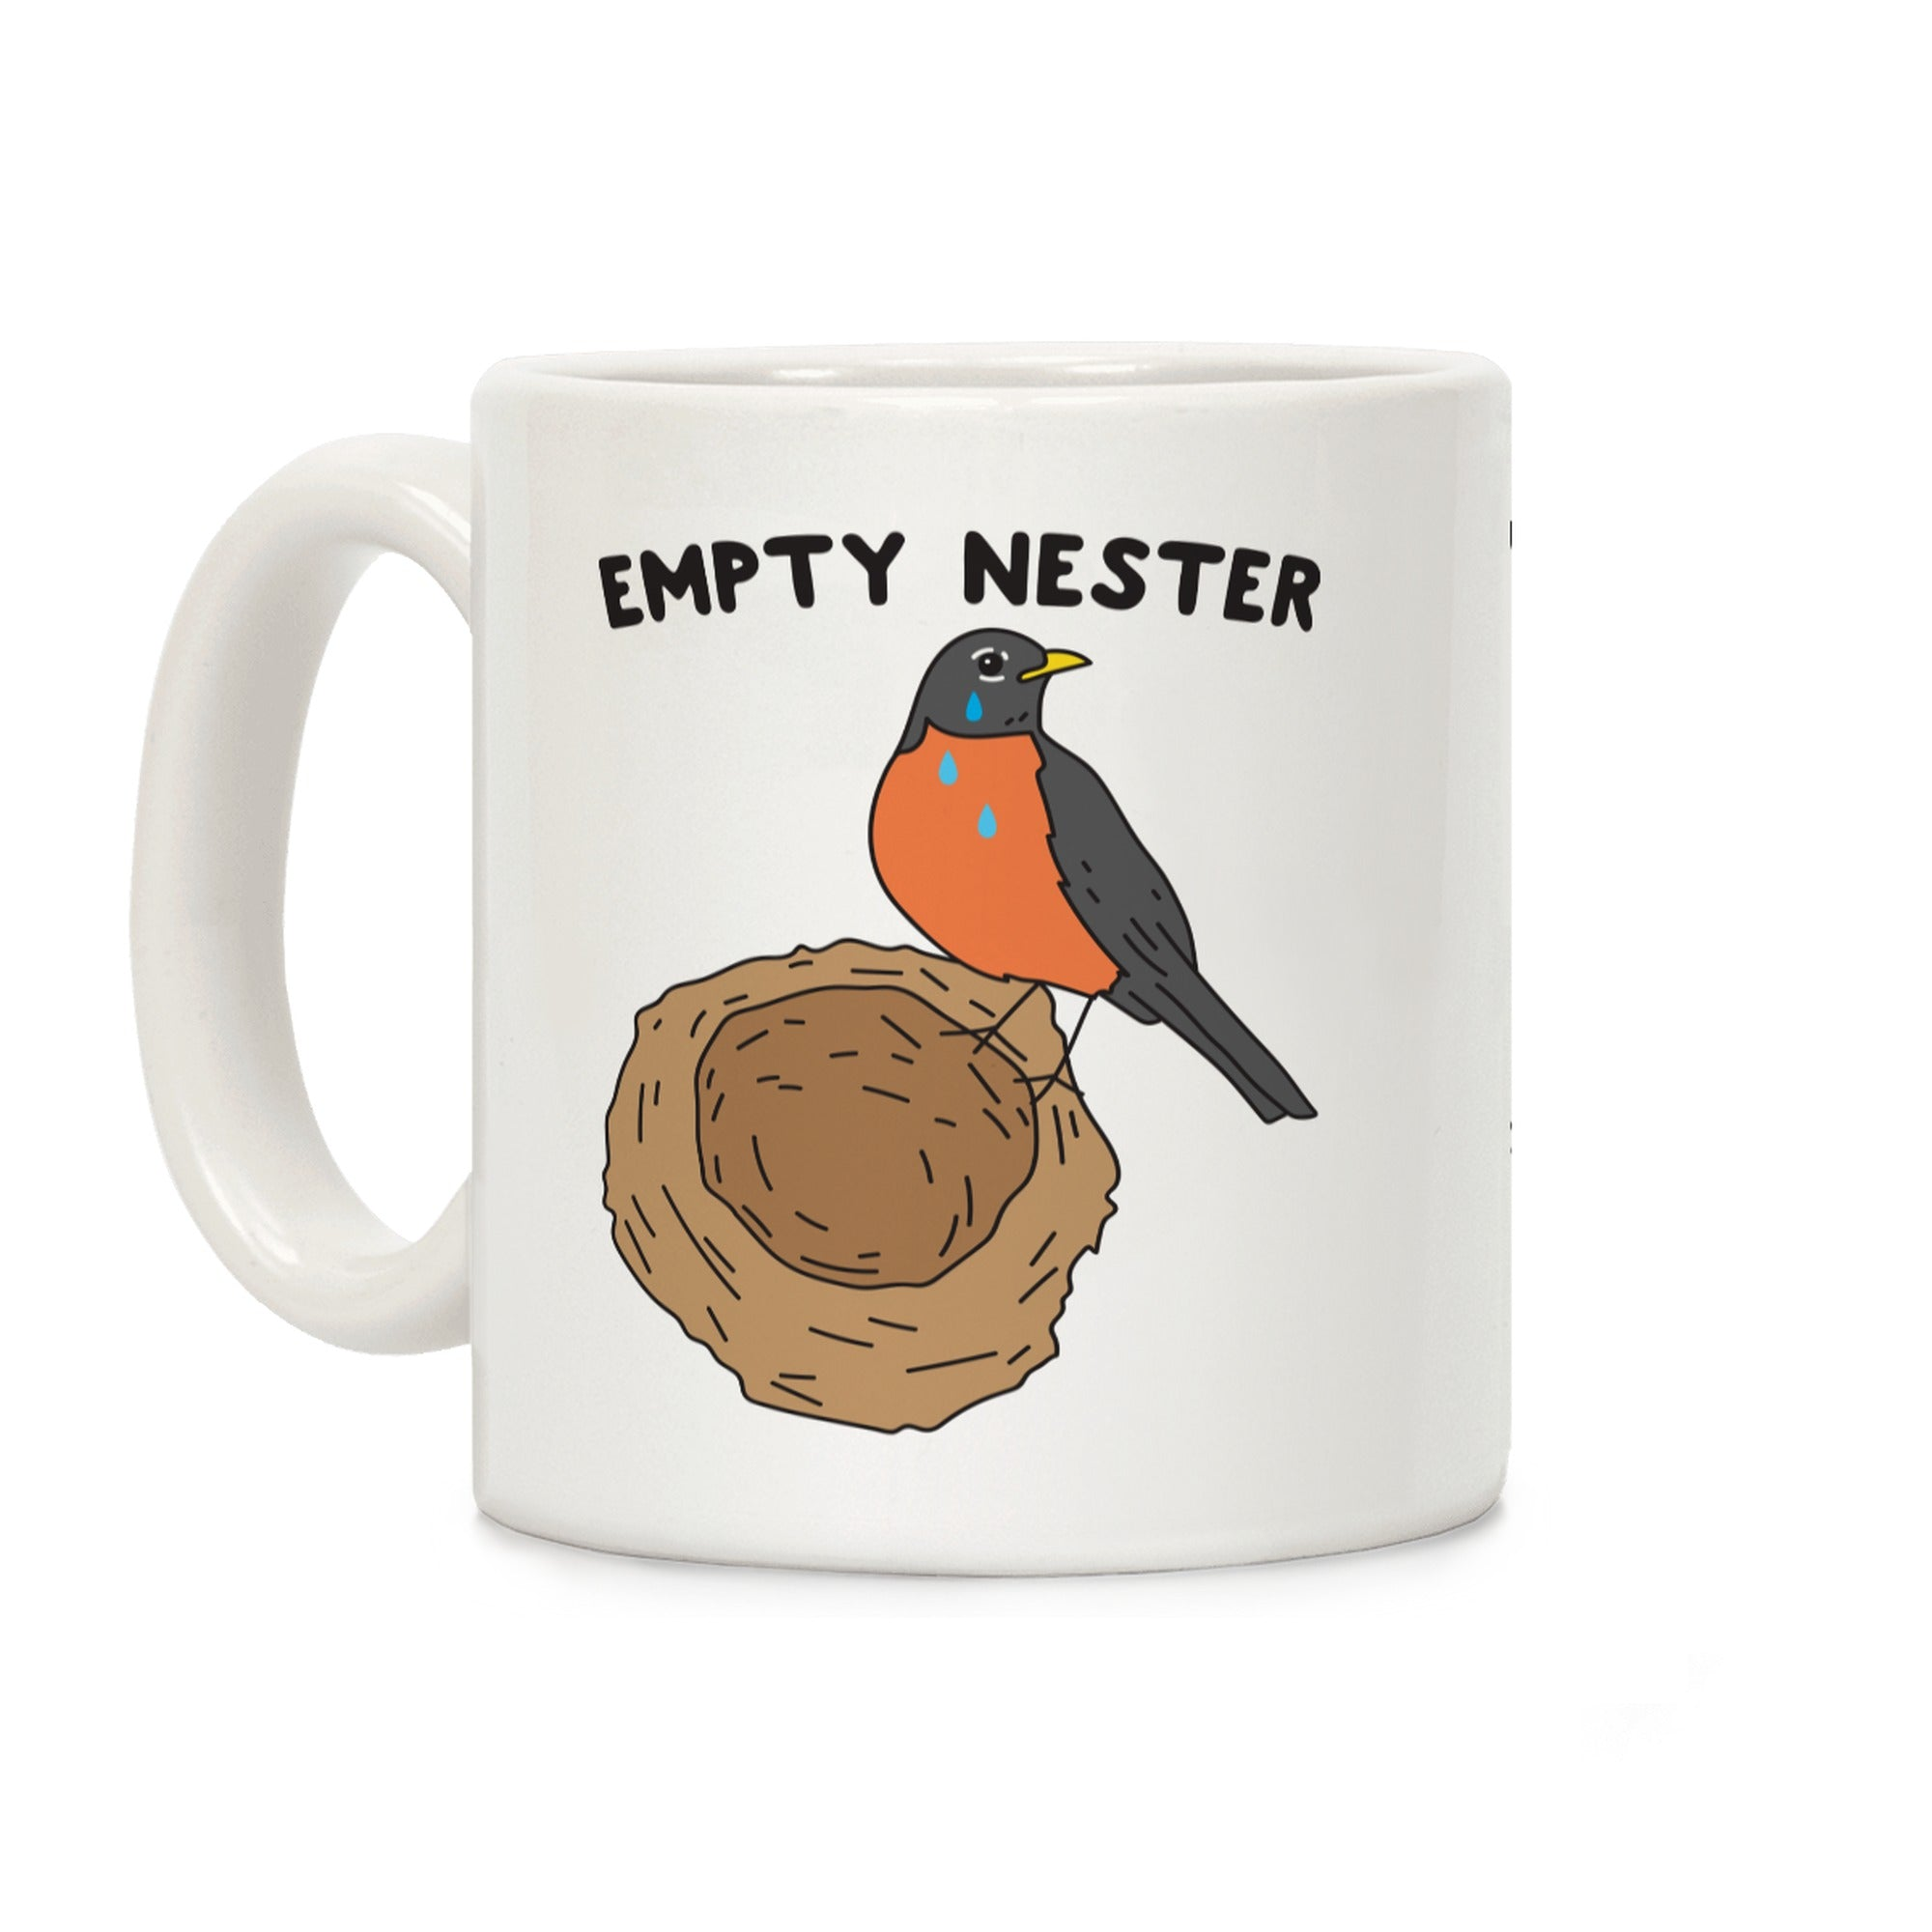 Empty Nester Ceramic Coffee Mug by LookHUMAN